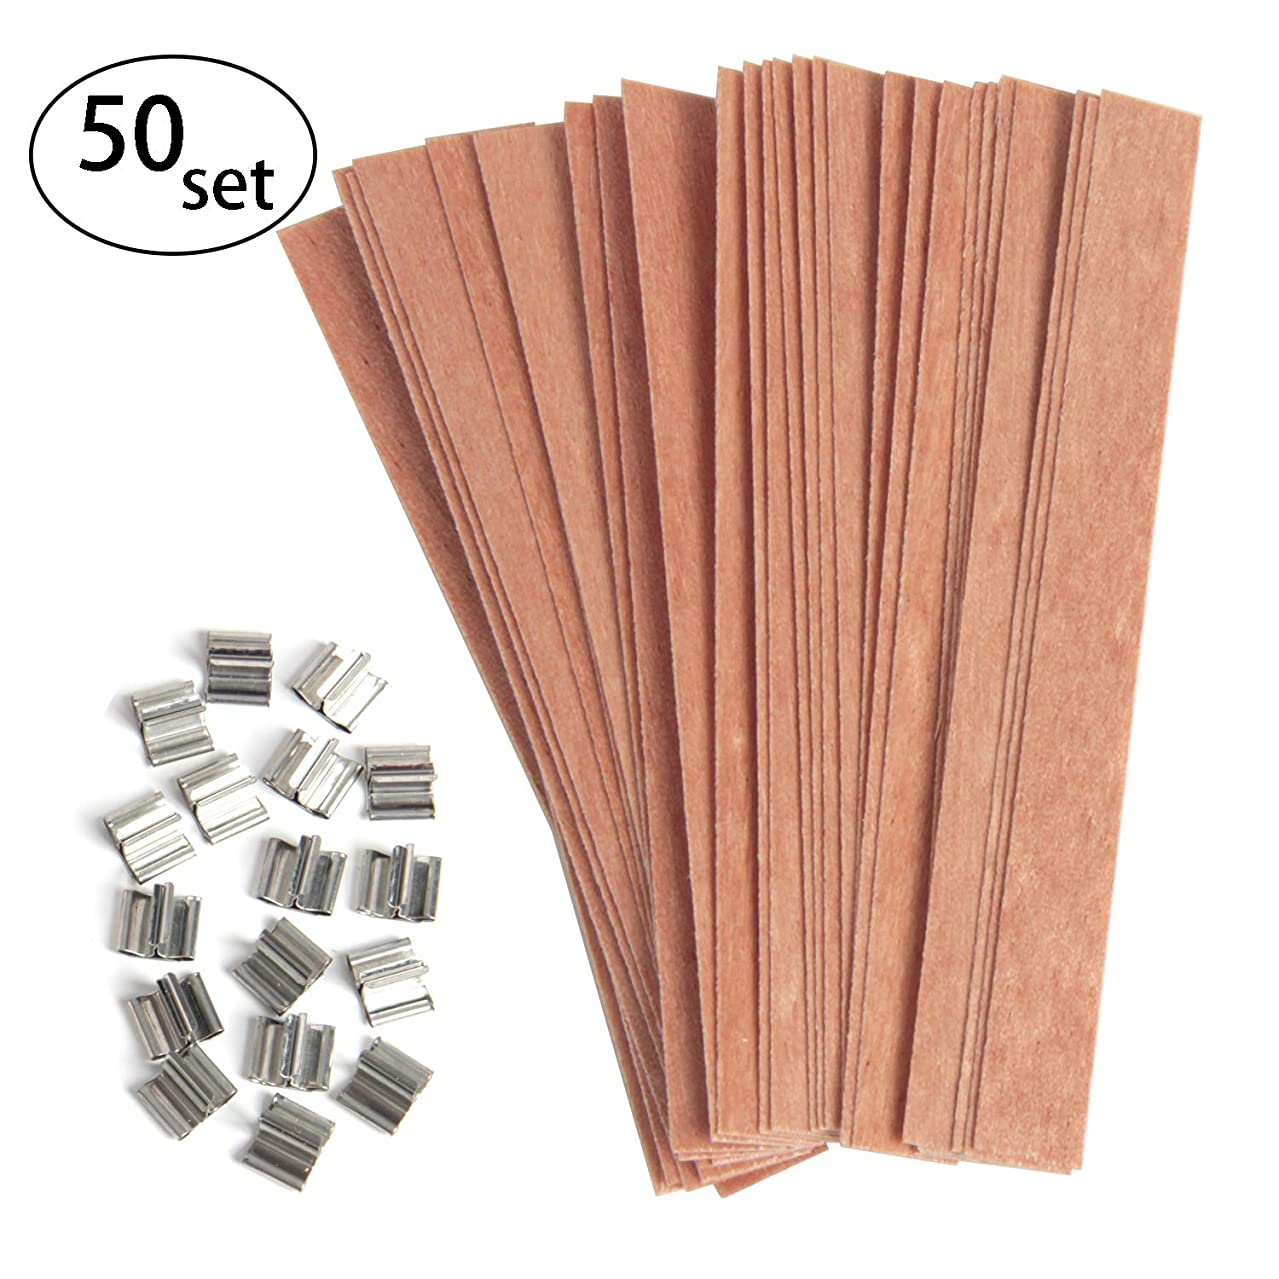 Hapy Shop 50 Pieces Wood Candle Wicks with Iron Stand Natural Environmental-Friendly Wick Candle Cores for Candle Making and Candle DIY(13x1.3cm / 5.1x0.5inch)